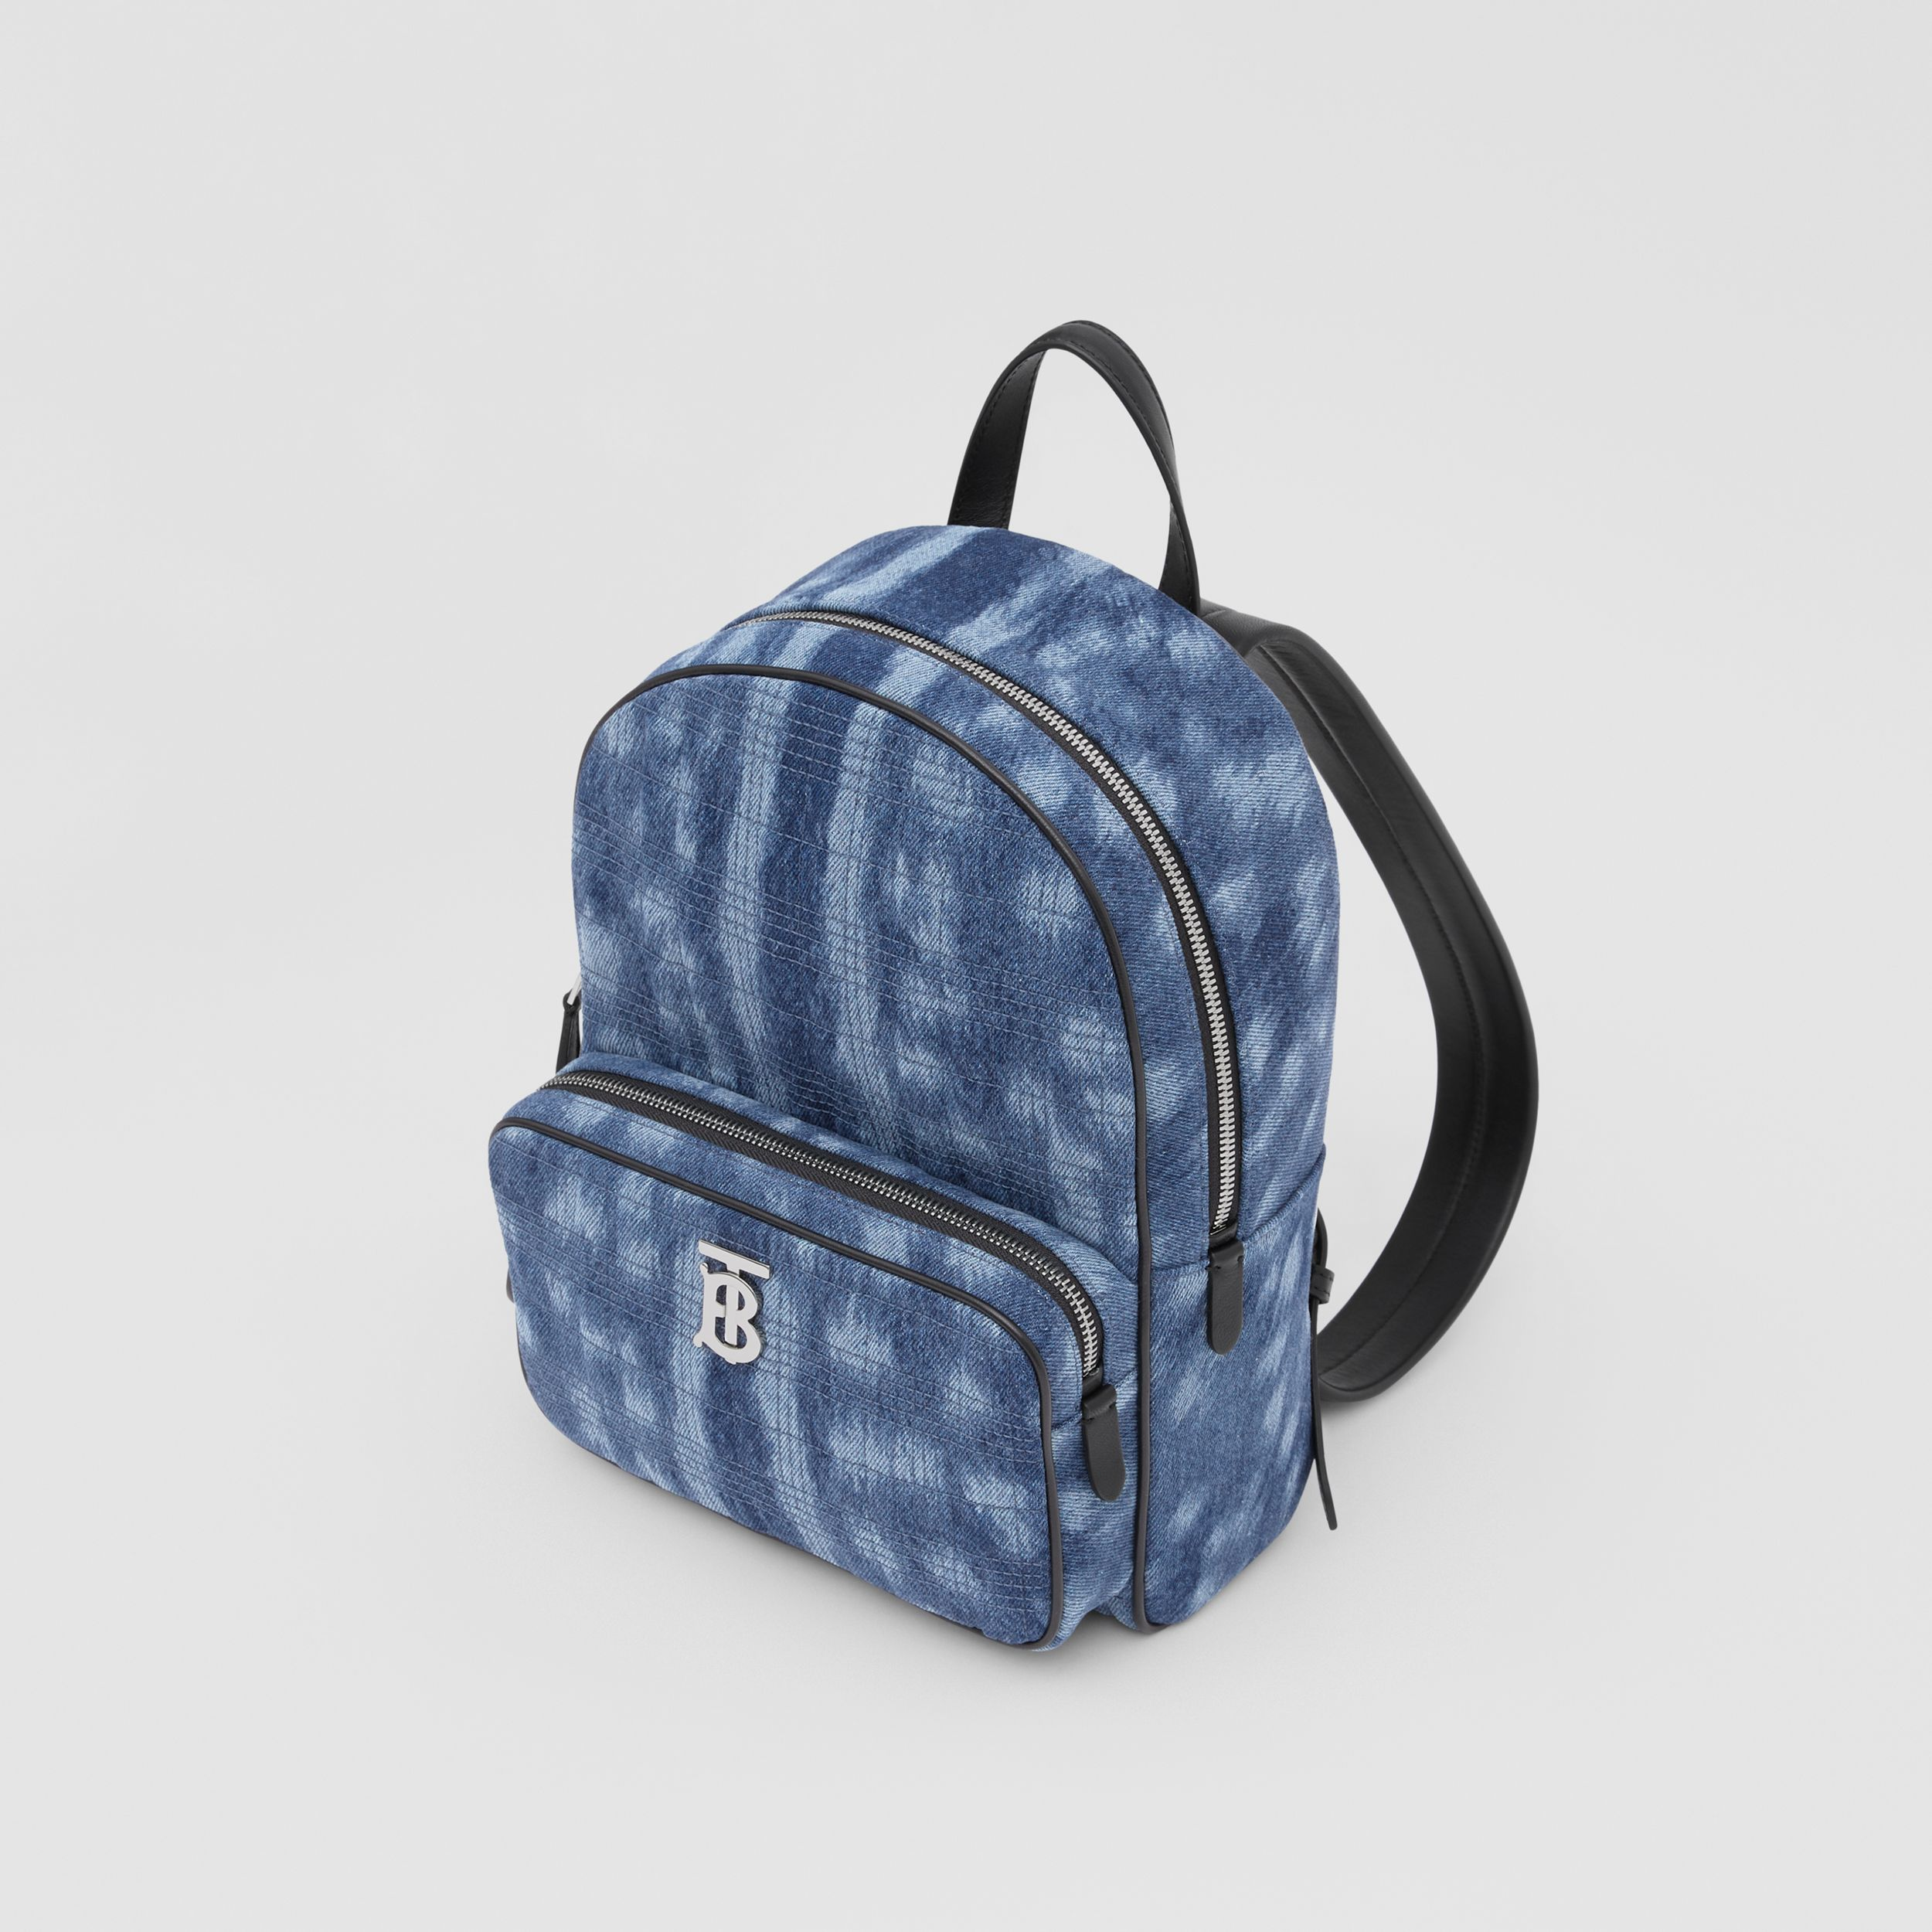 Quilted Deer Print Denim Backpack in Blue - Women | Burberry - 3